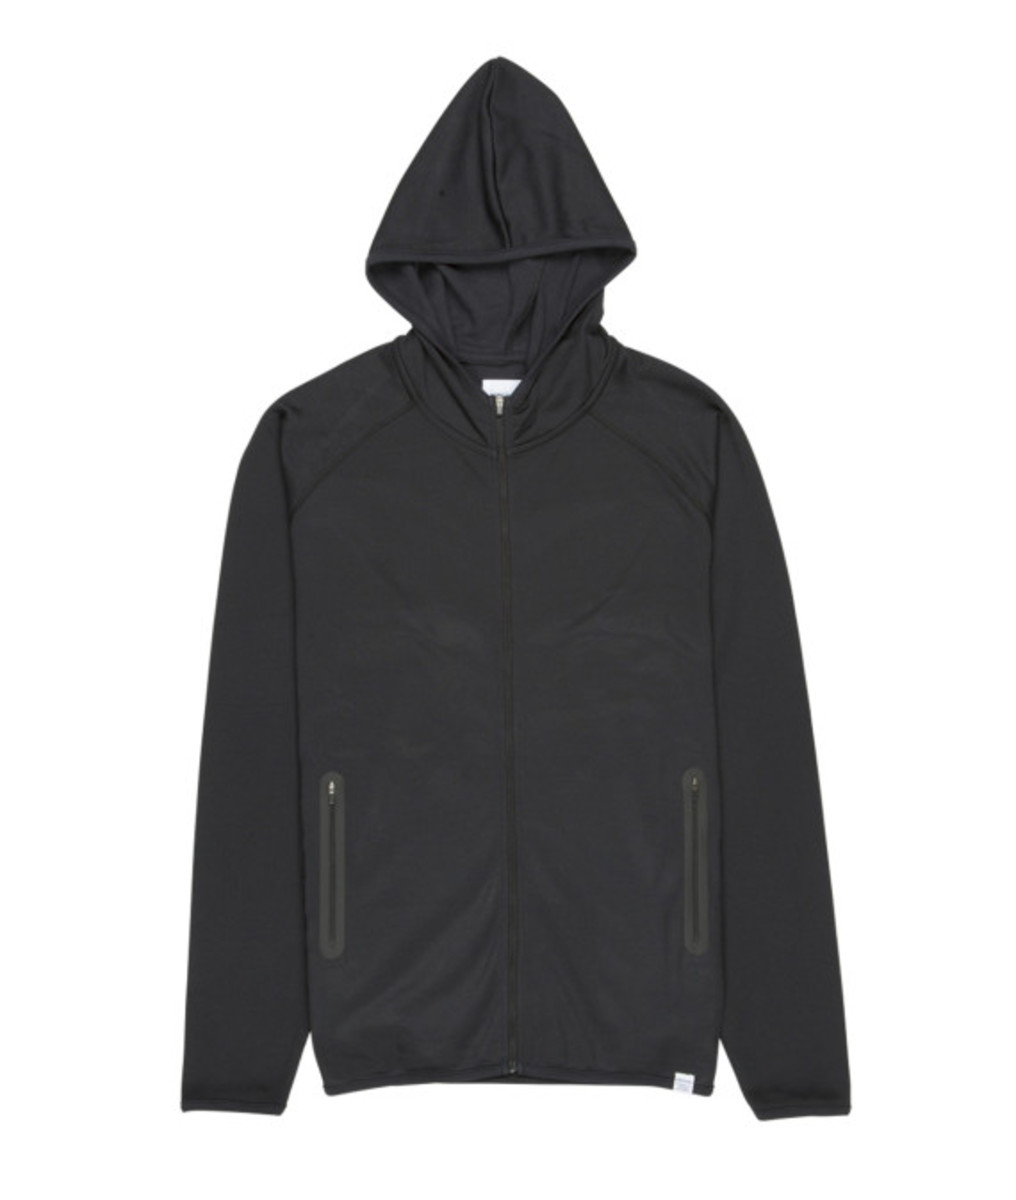 norse-projects-technical-garments-spring-2014-b